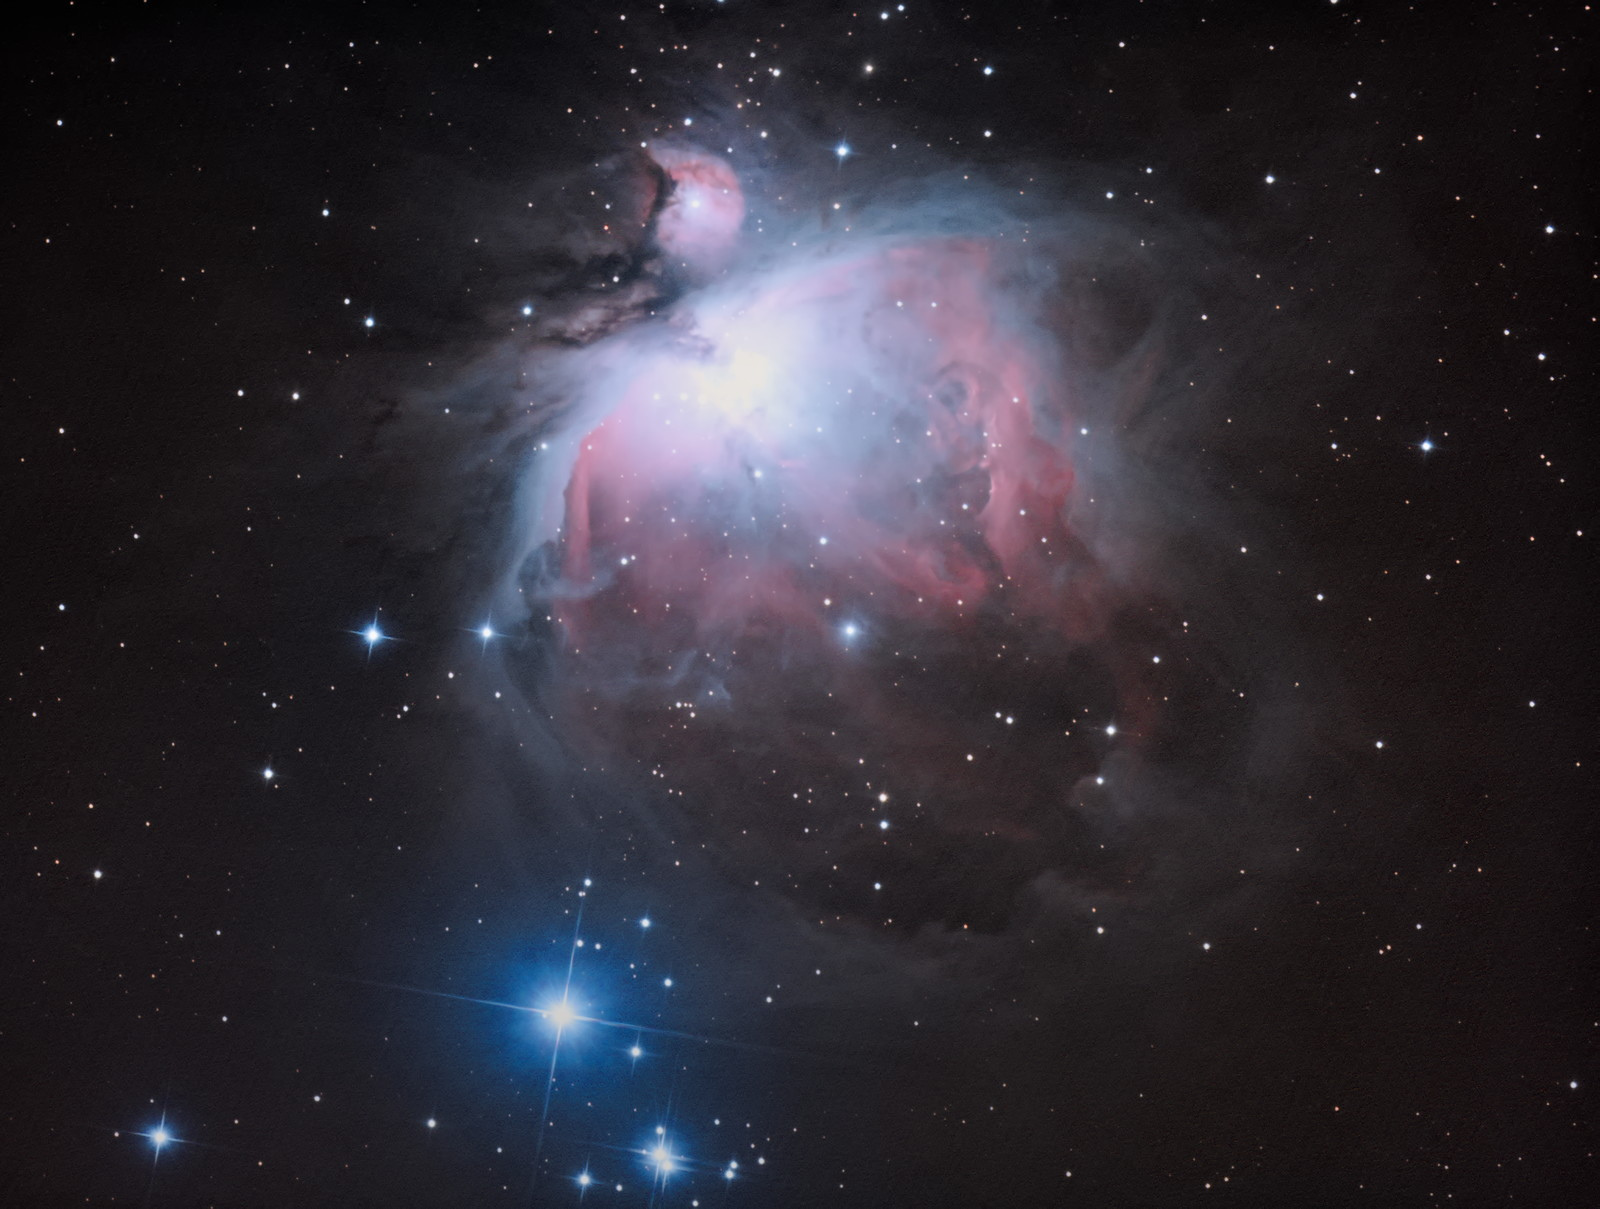 orion_act_red-2.jpg.e696a2bf354eafc73caaa2ec03582f93.jpg